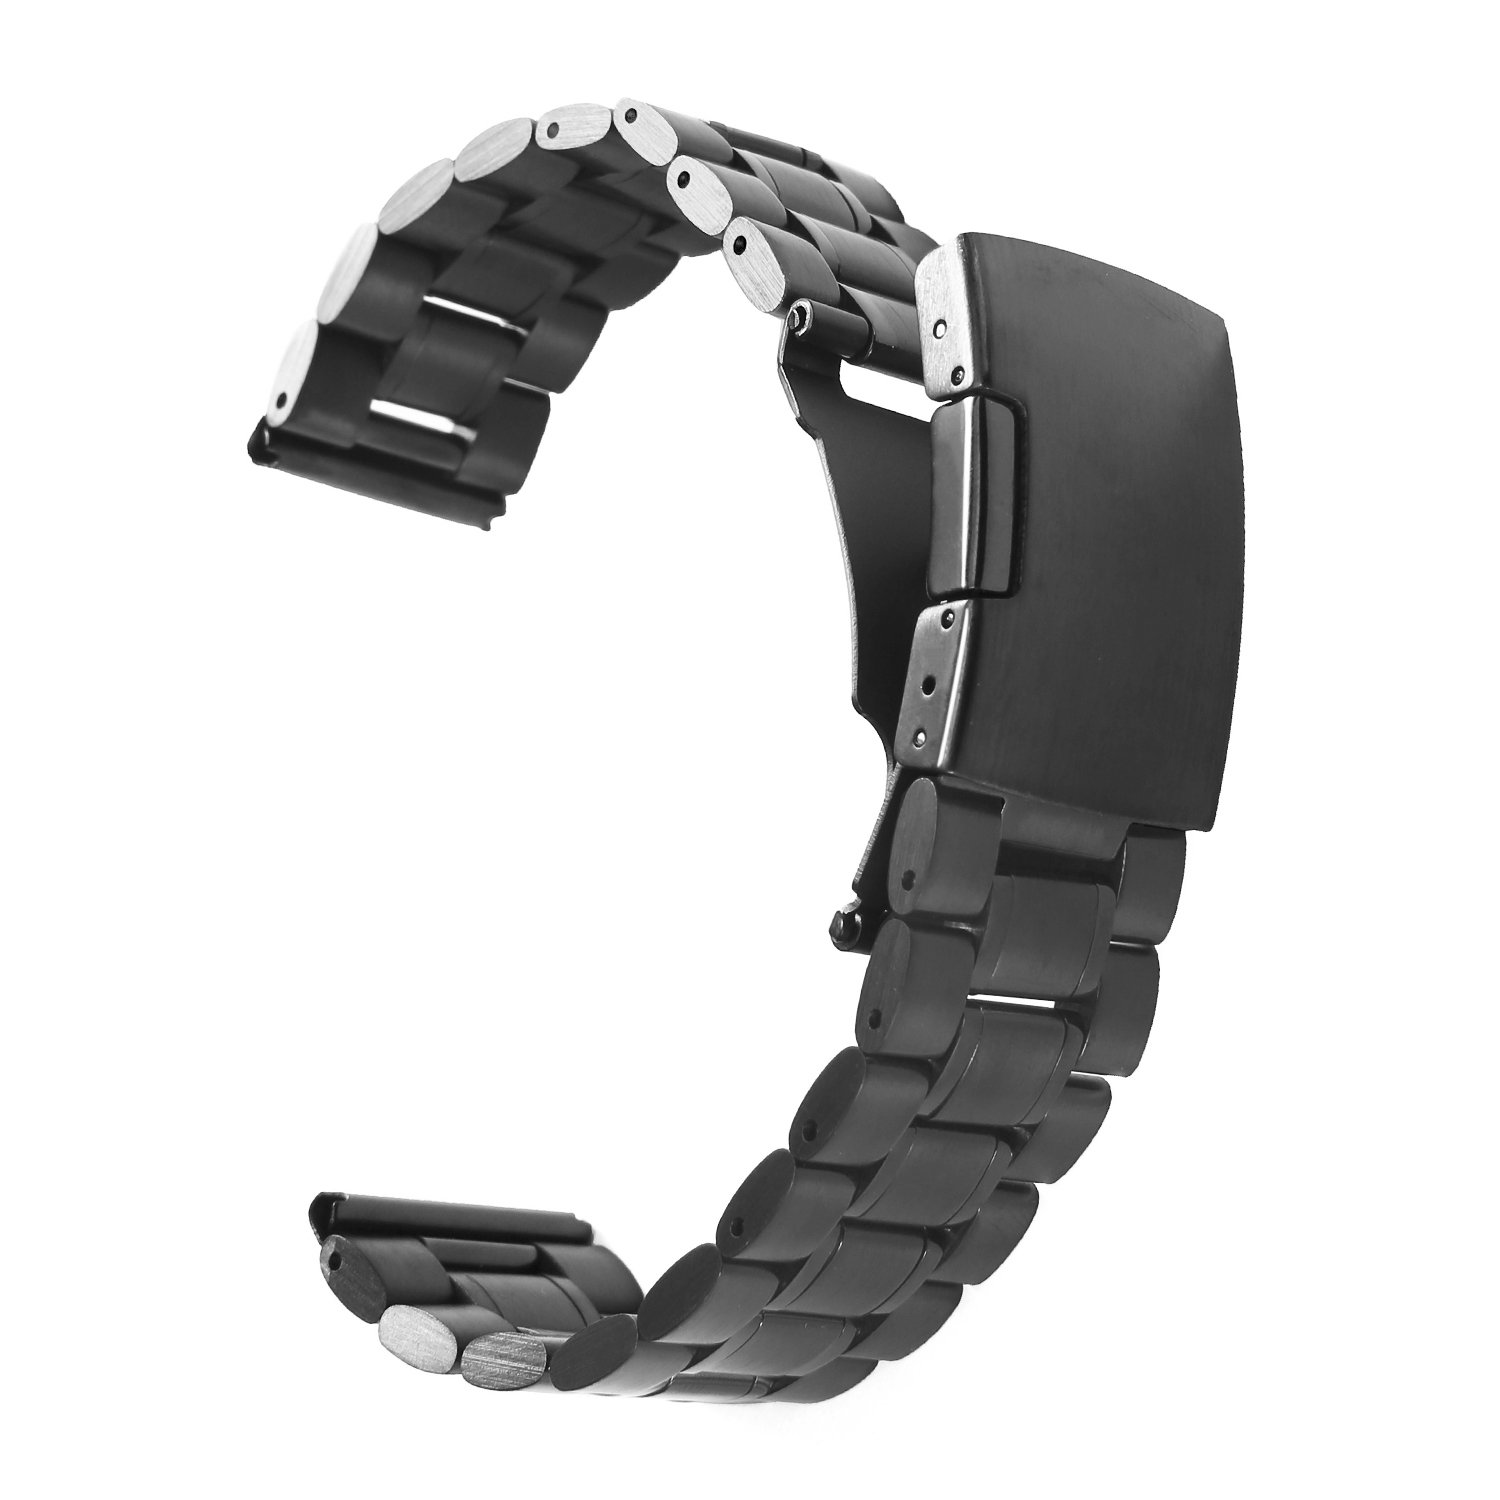 Vetoo 304 Stainless Steel 22mm Watch Bands For Moto 360 2nd Gen 46mm,pebble  Time